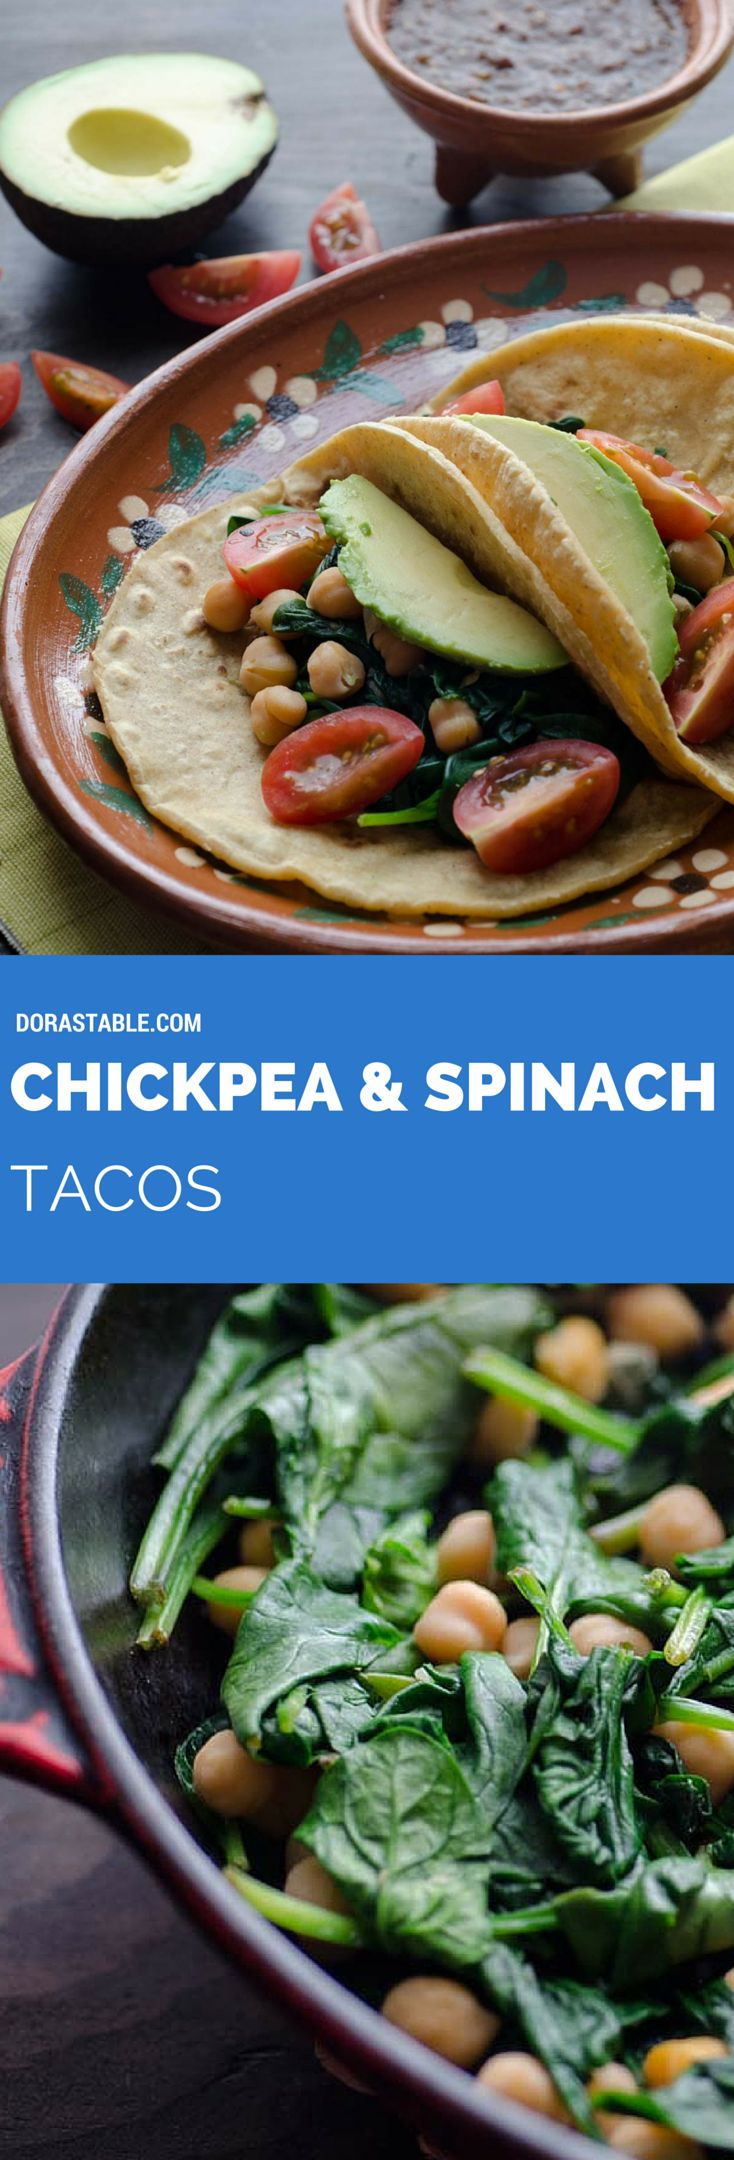 This recipe for Chickpea and Spinach tacos is my go-to easy lunch. Serve on warm corn tortillas, topped with cherry tomatoes, avocado, salsa, and pepitas. Vegan & Gluten-free